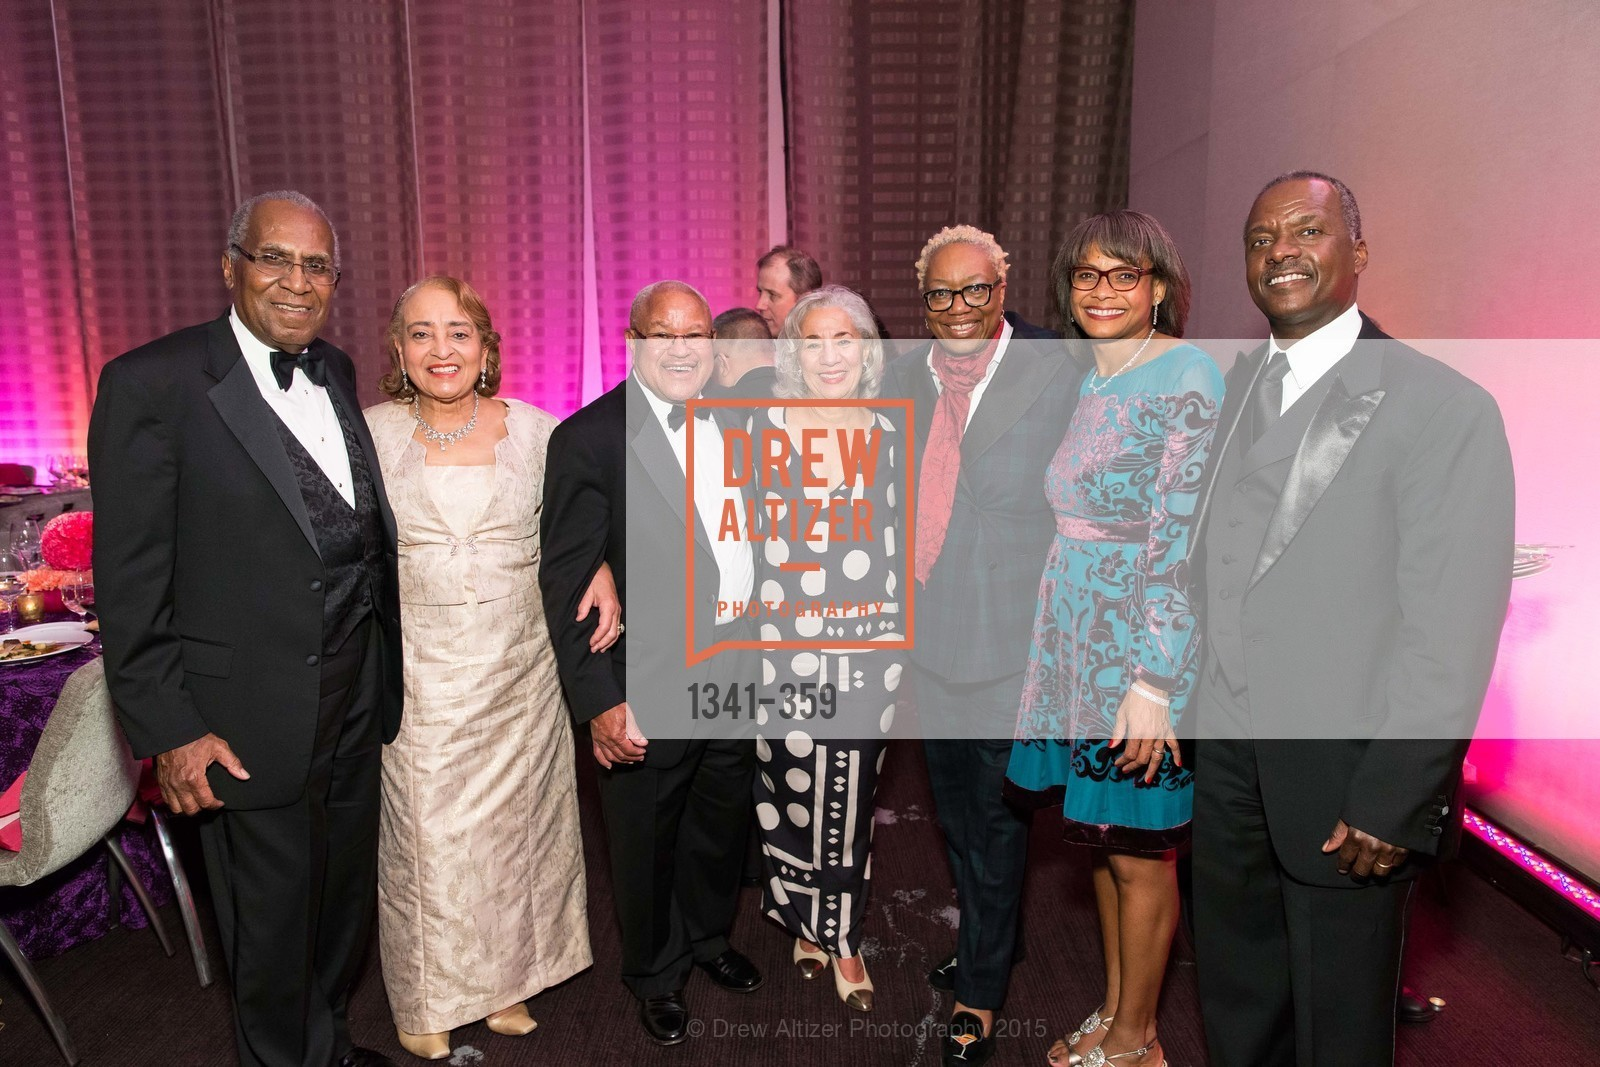 Lowell James Gibbs, Jewelle Taylor Gibbs, Harry Bremond, Peggy Woodford Forbes, Linda Harrison, Karen Jenkins Johnson, Kevin Johnson, 2015 MoAD Gala: Finding the I in Diaspora, MoAD Museum & The St. Regis, October 10th, 2015,Drew Altizer, Drew Altizer Photography, full-service event agency, private events, San Francisco photographer, photographer California